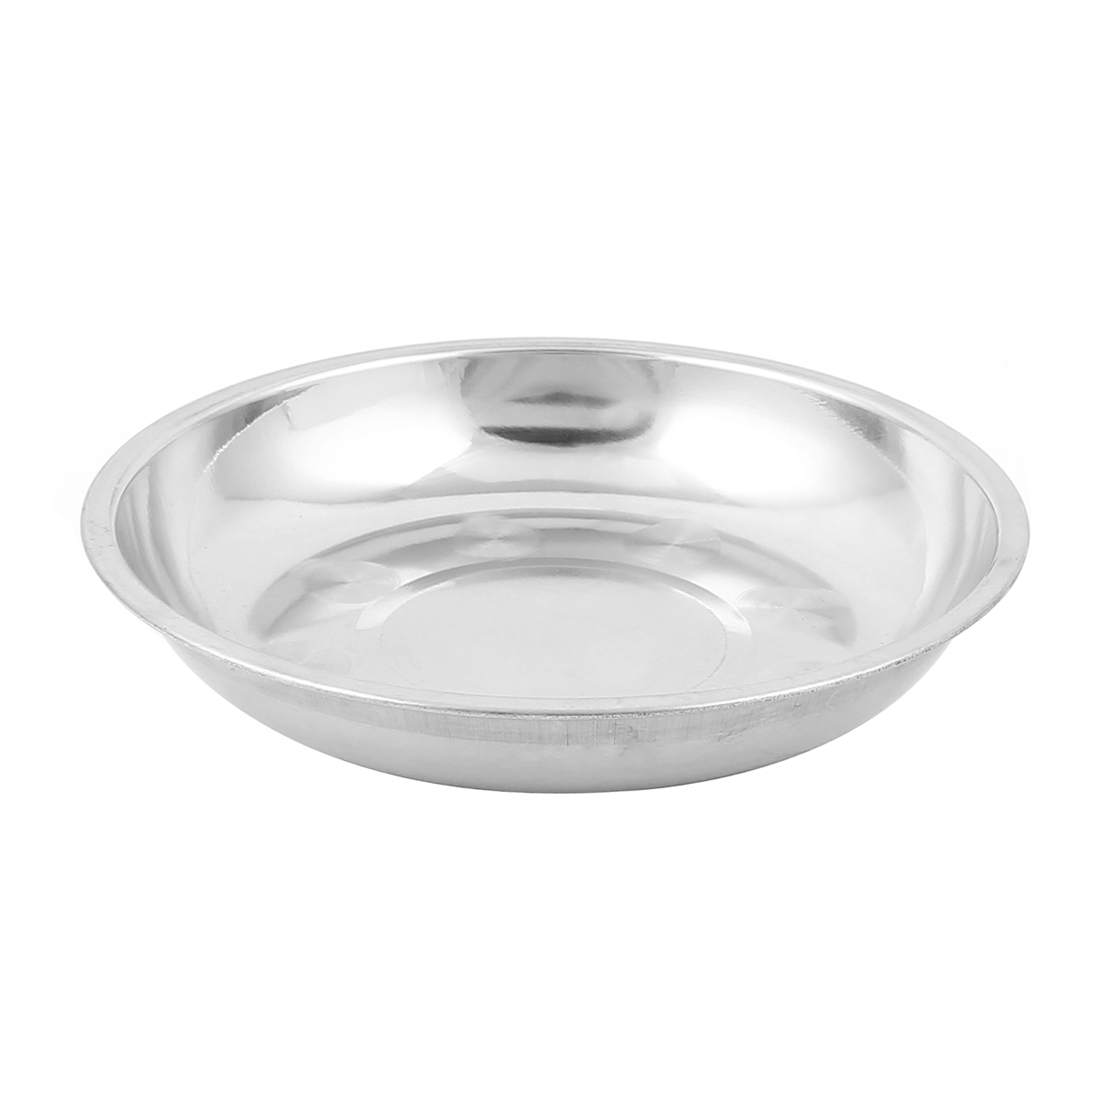 "18cm/7.1"" Dias Strainless Steel Round Shaped Food Vegetables Dish Plate Silver Tone"